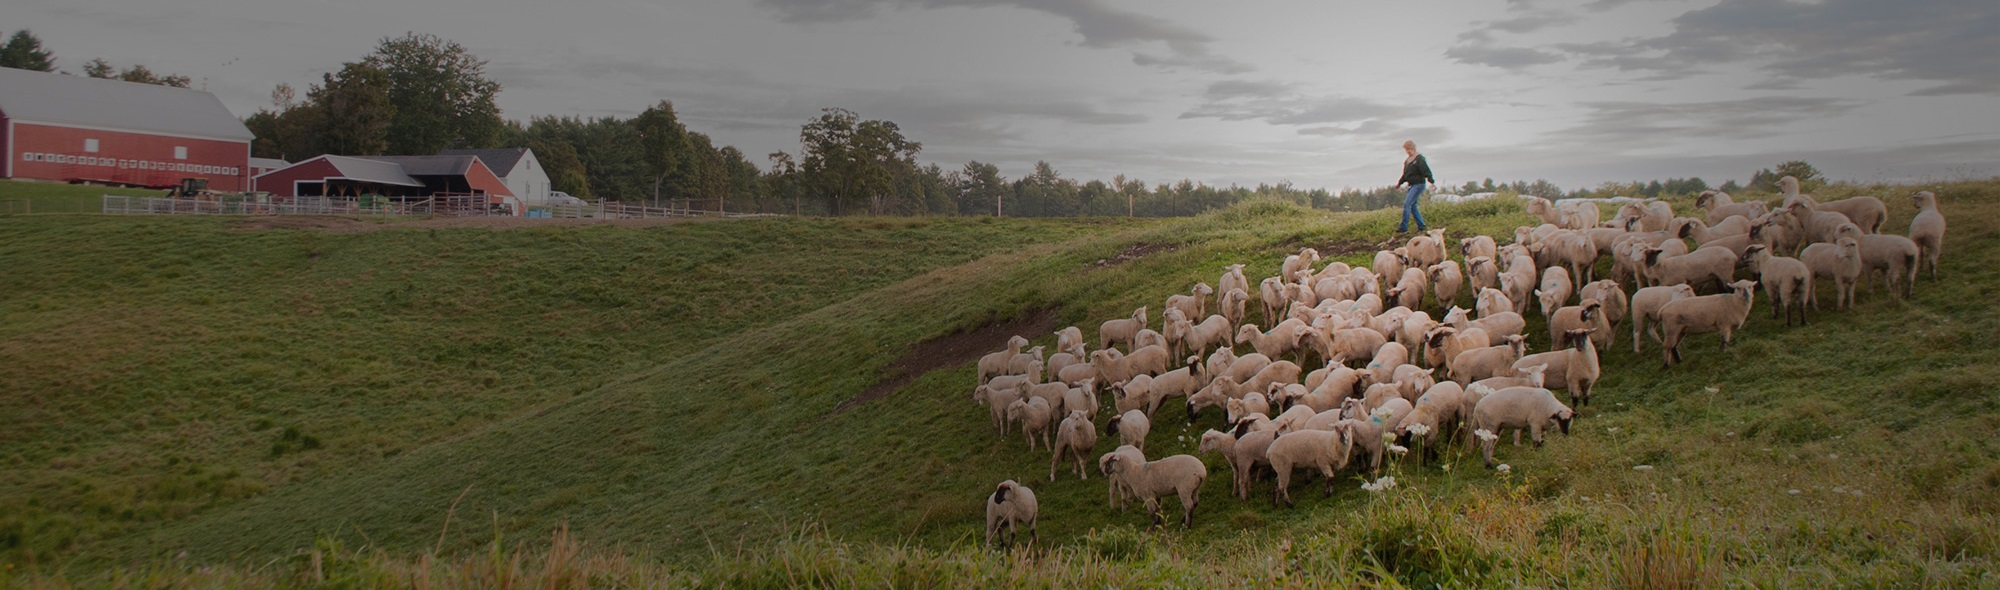 Outdoor rural farm scene showing flock of sheep and farmer.